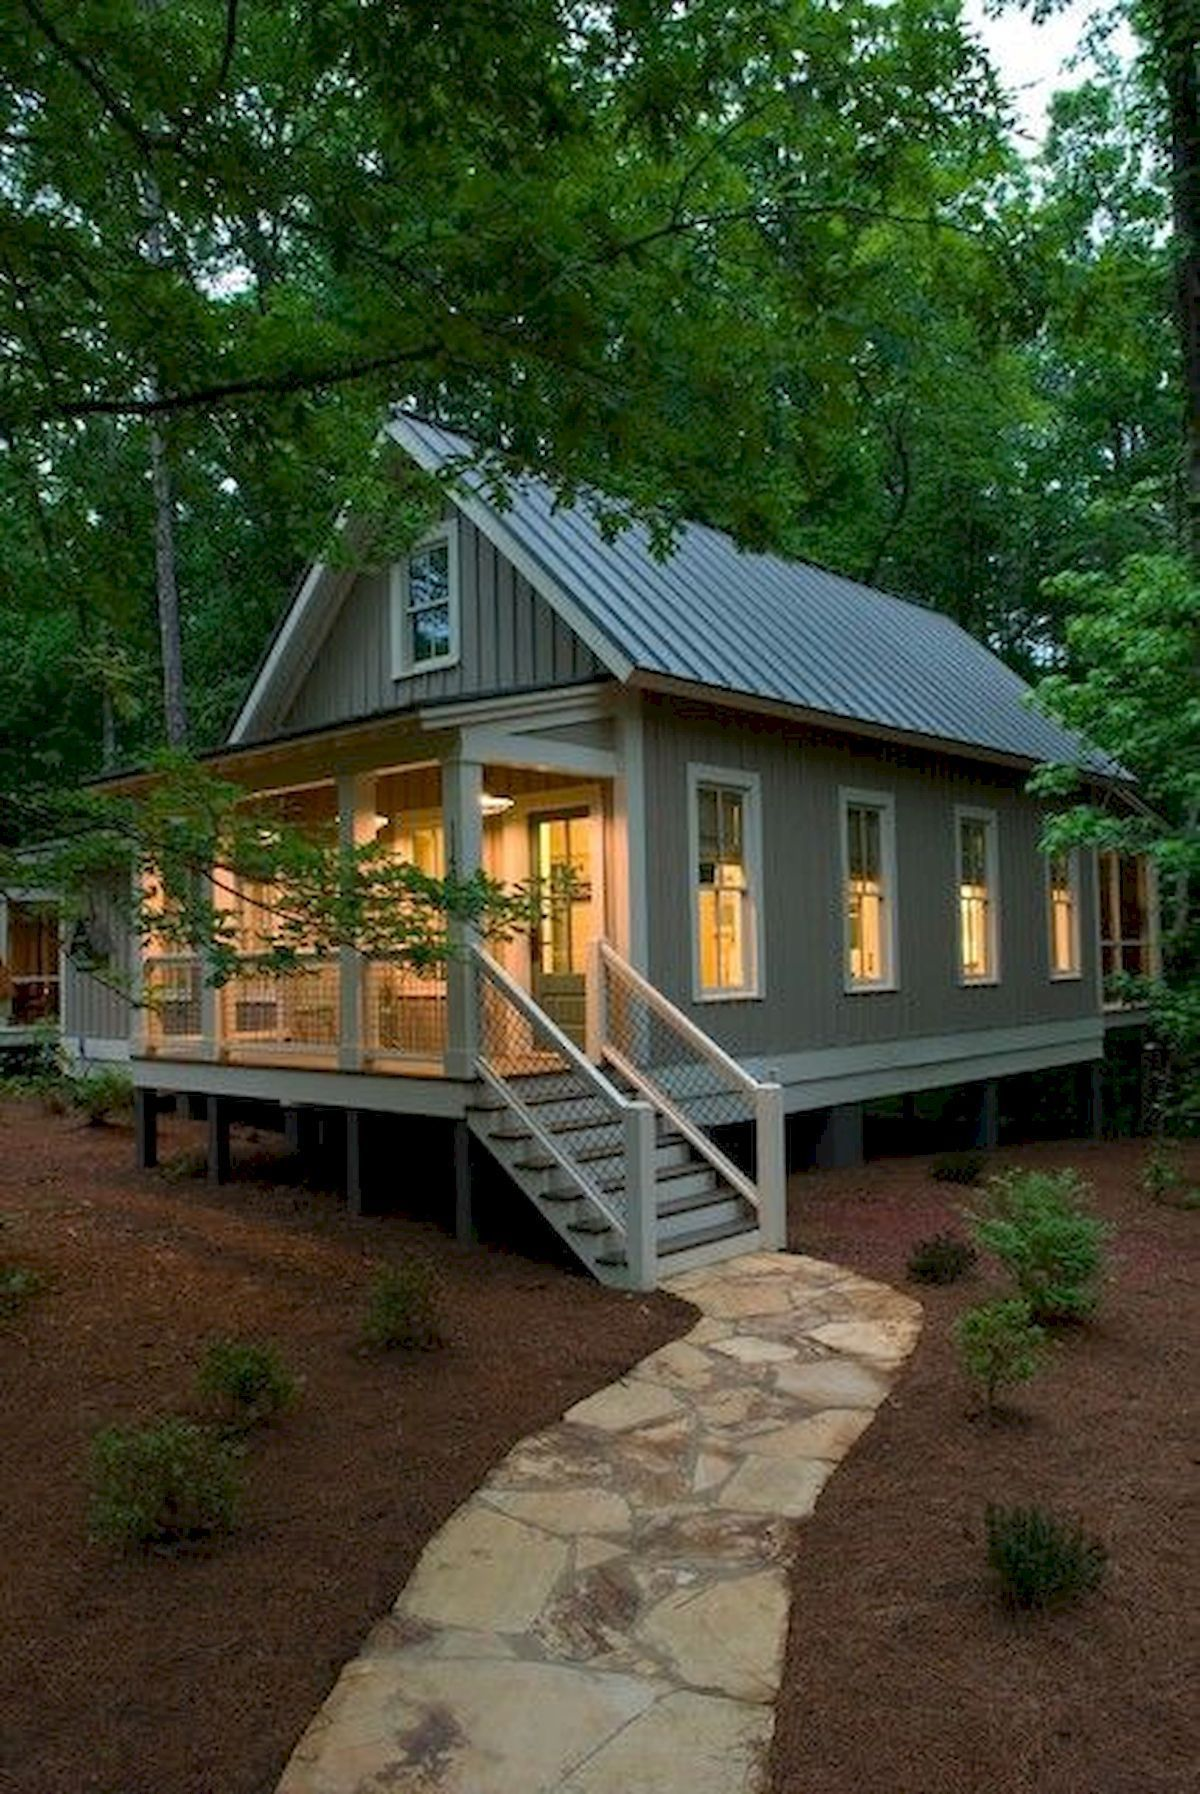 33 Best Tiny House Plans Small Cottages Design Ideas 1 33decor Cottage House Exterior Small Cottage House Plans Small Lake Houses